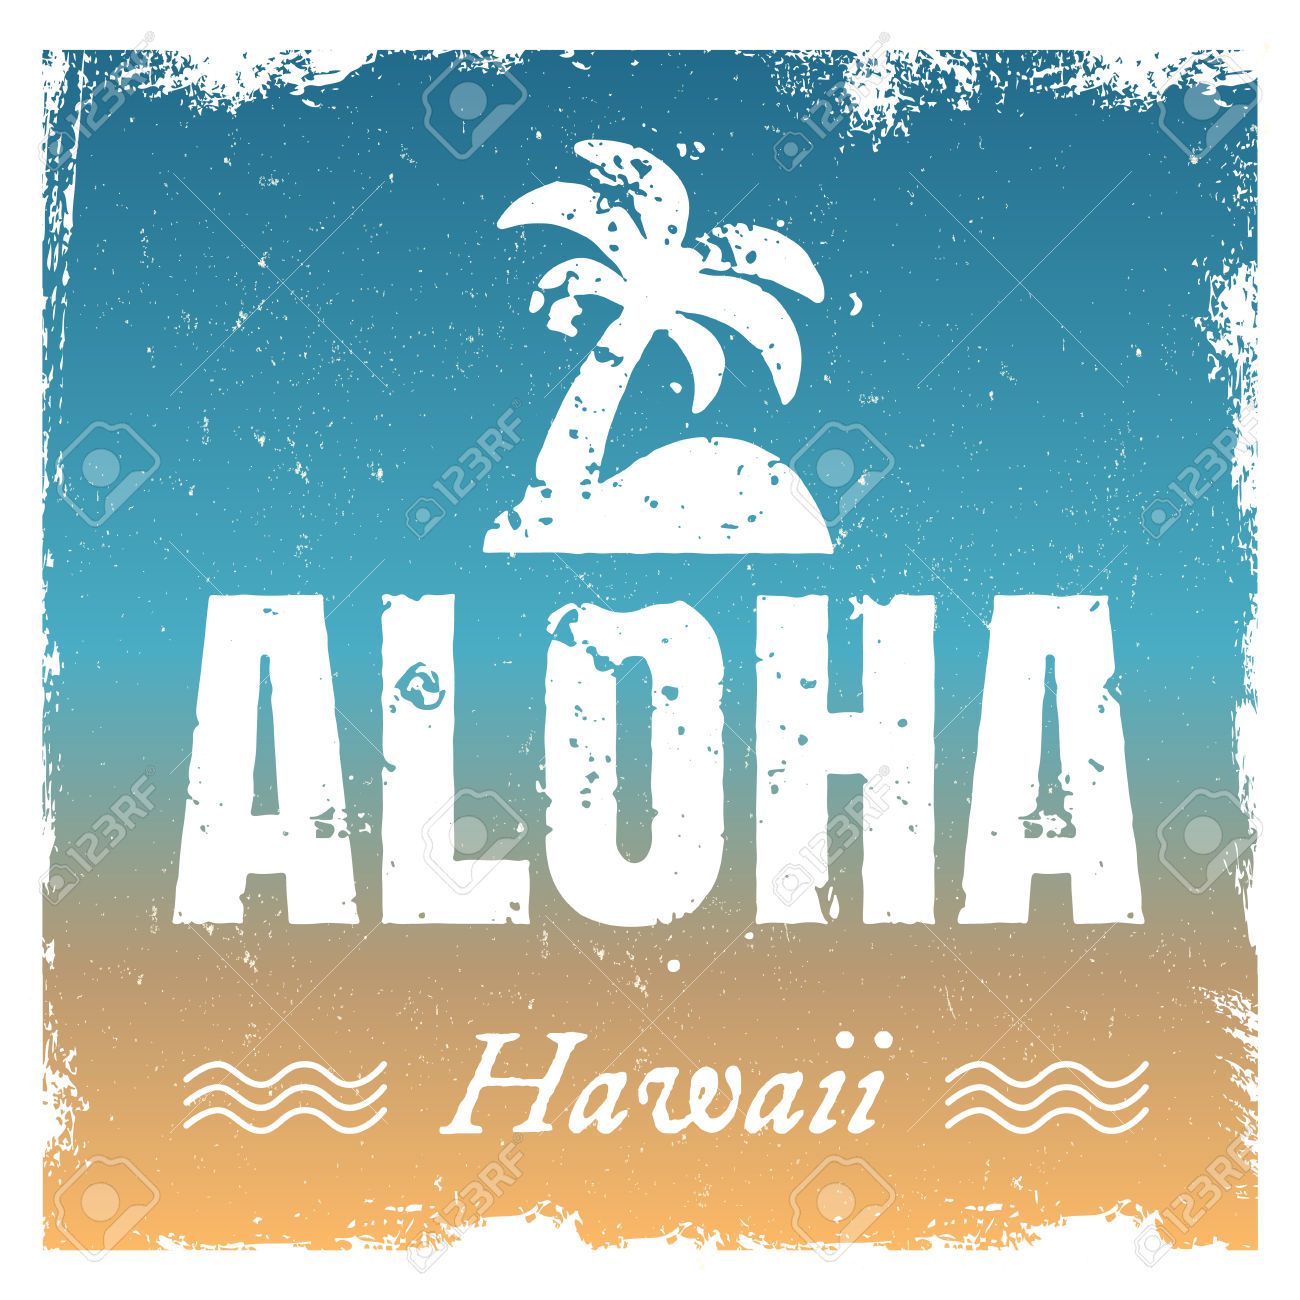 Nice Images Collection: Aloha Desktop Wallpapers